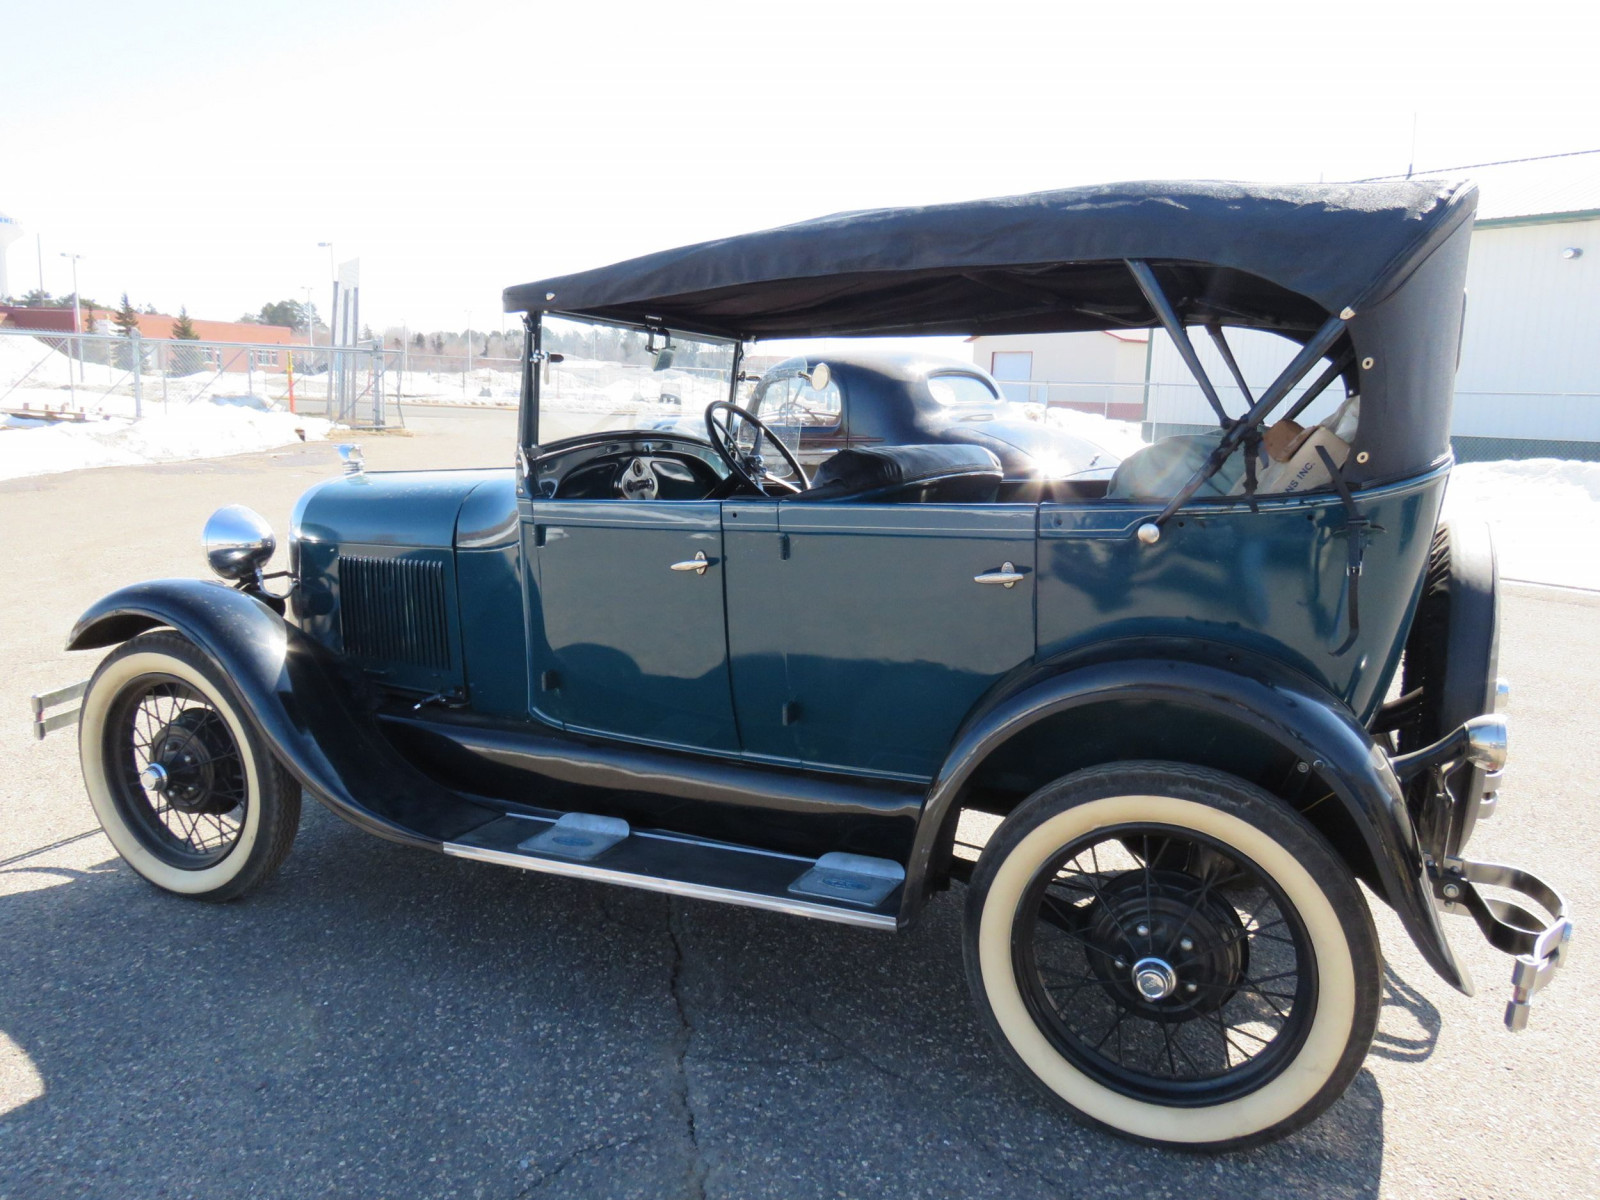 1929 Ford Model A Phaeton - Image 5